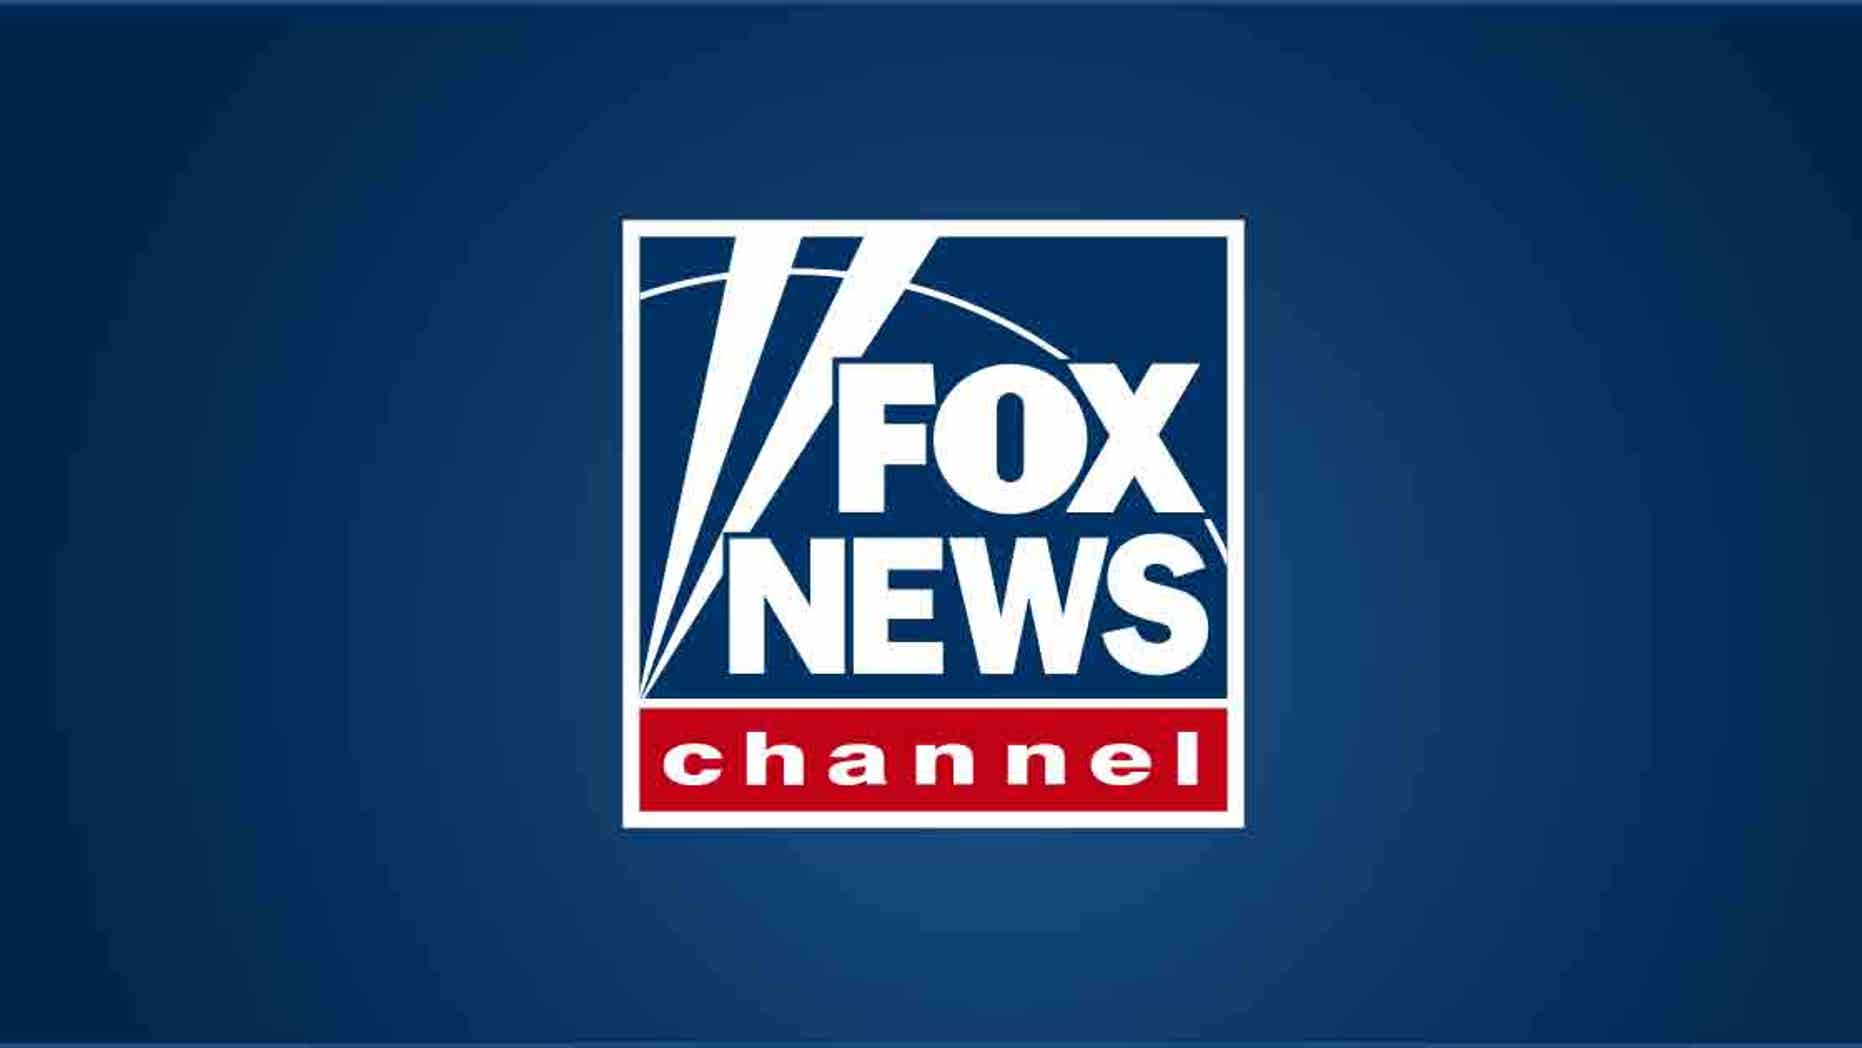 Westlake Legal Group fox-news-channel-logo Today on Fox News: Jan. 3, 2019 fox-news/media fox-news/entertainment/media fox news fnc/media fnc c27ecbce-ff78-5fc6-82ef-3604d4099562 article